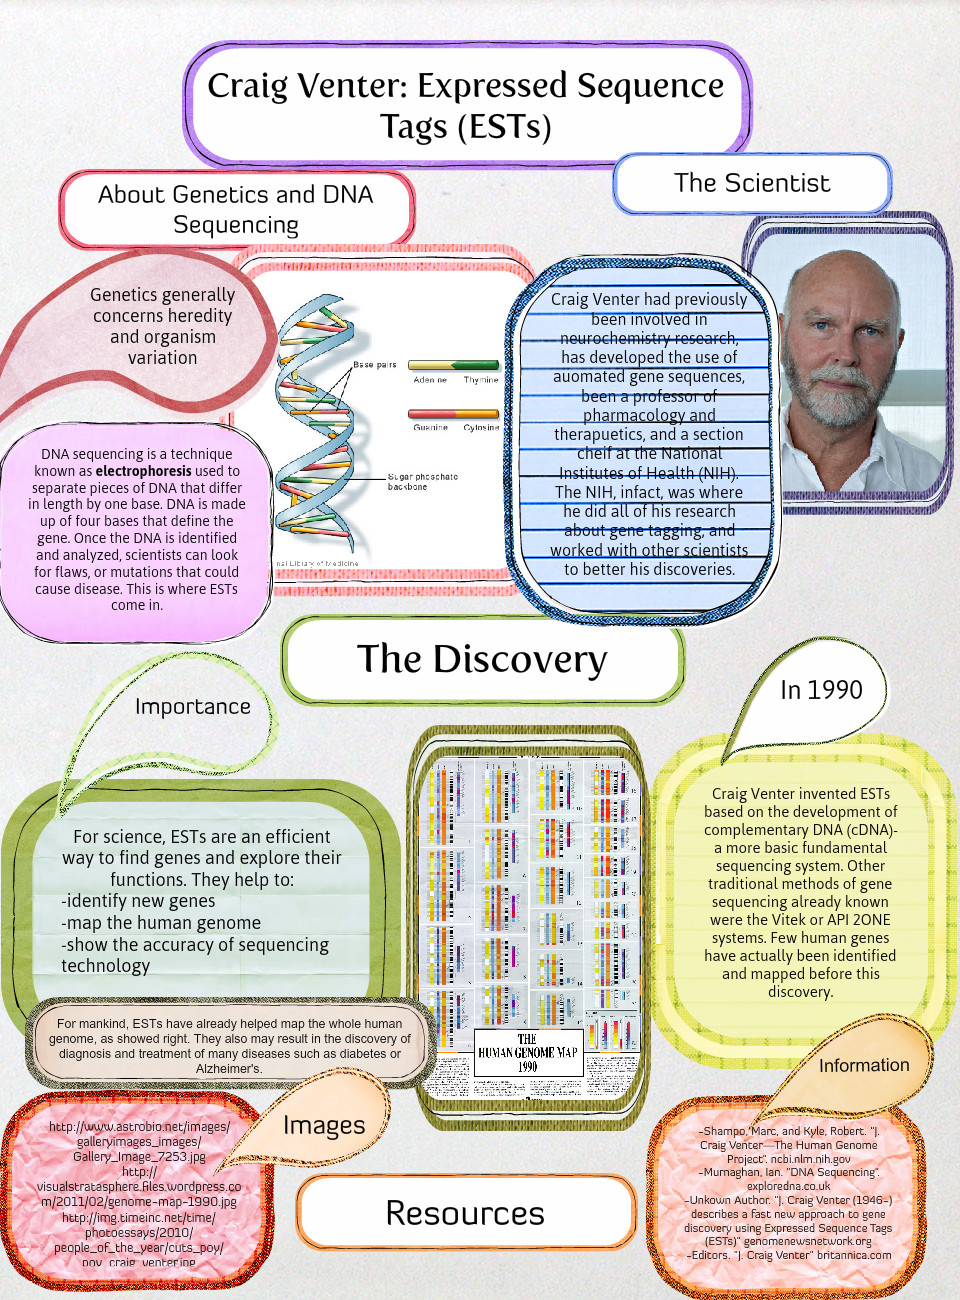 Craig Venter: Expressed Sequence